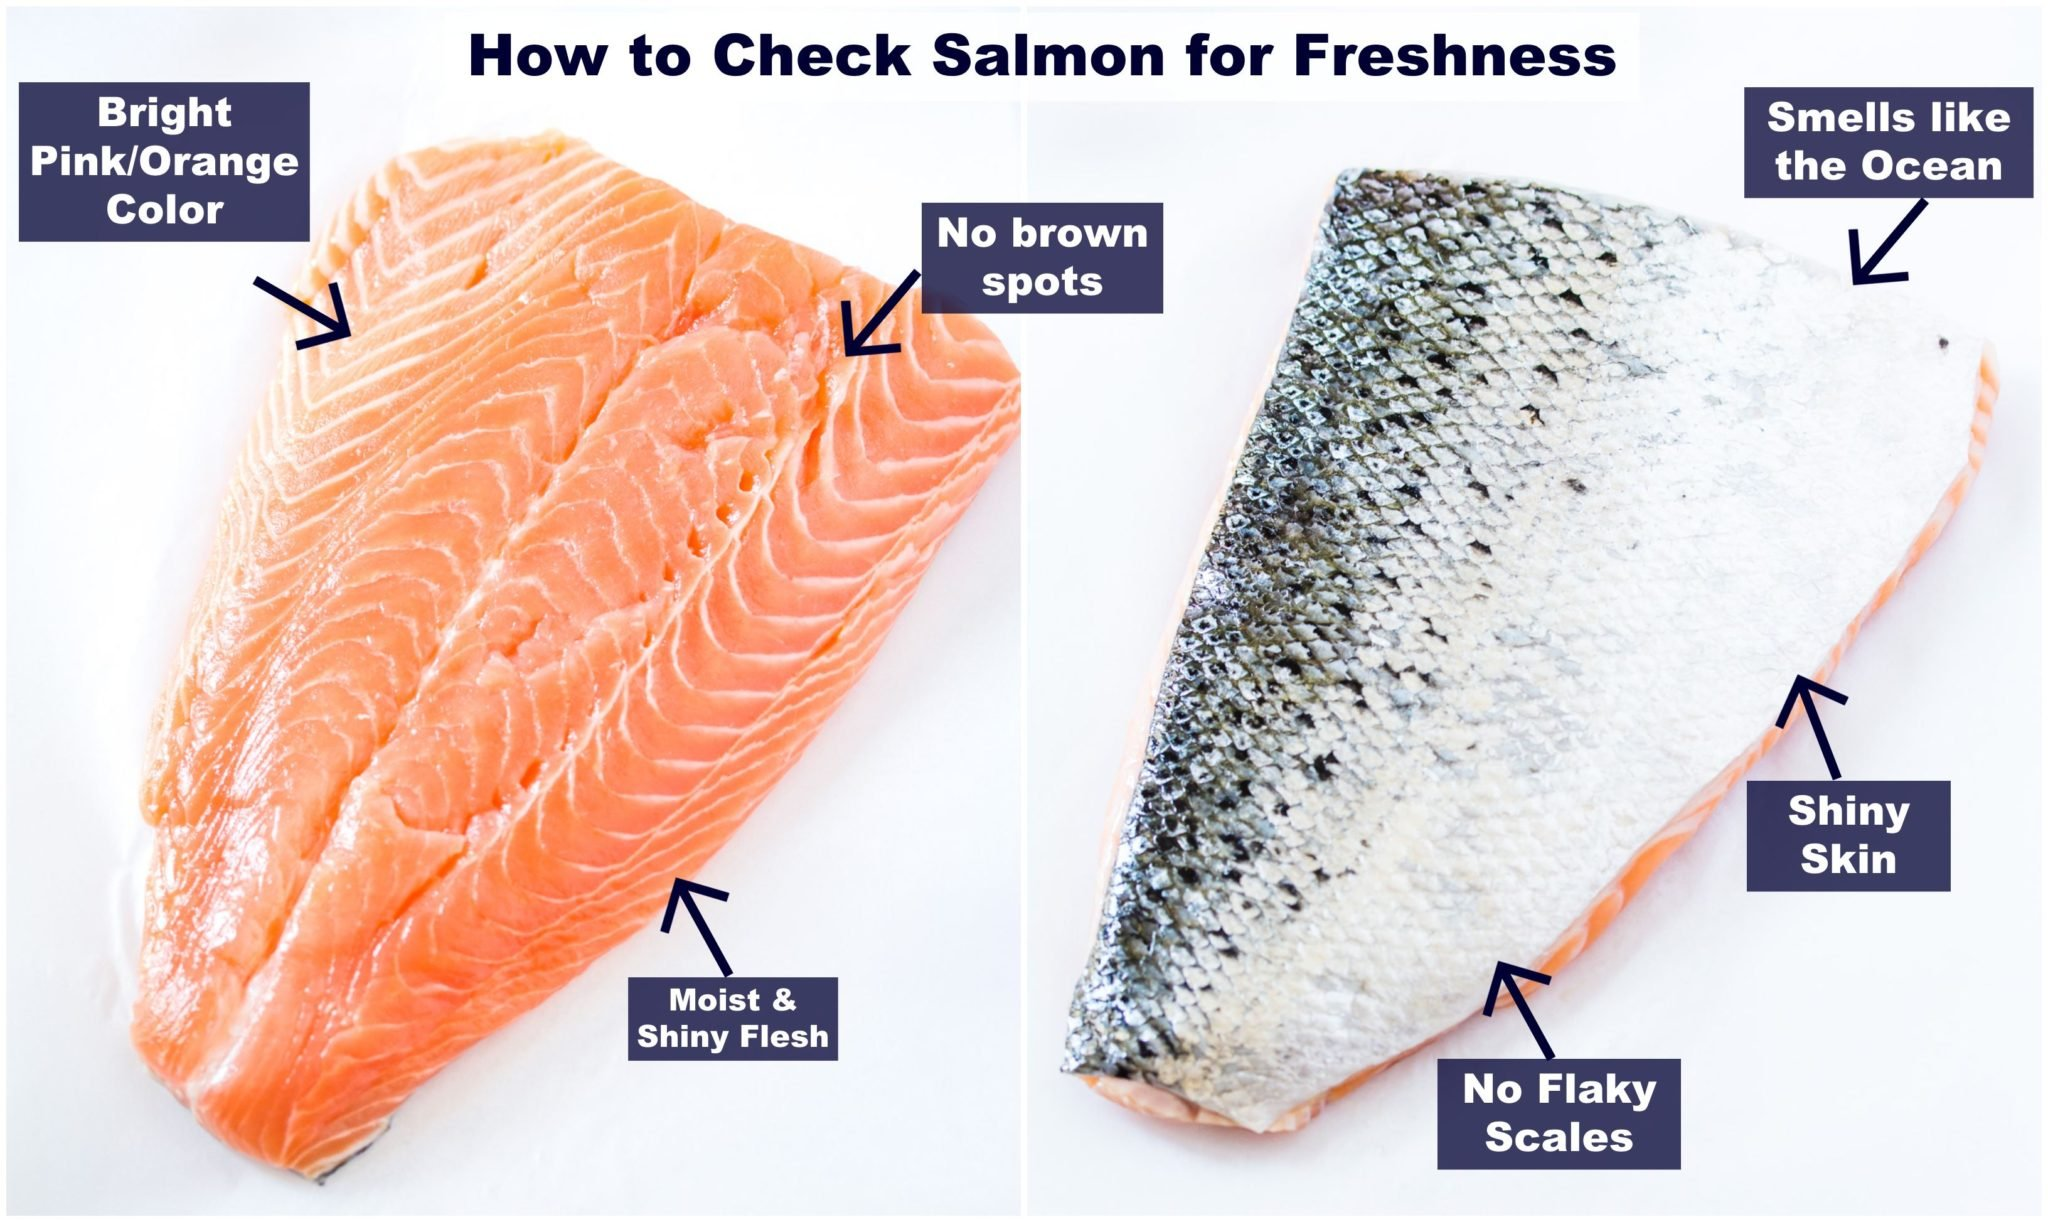 A fillet of salmon on white backdrop with text overlay indicating tips on buying fresh salmon.